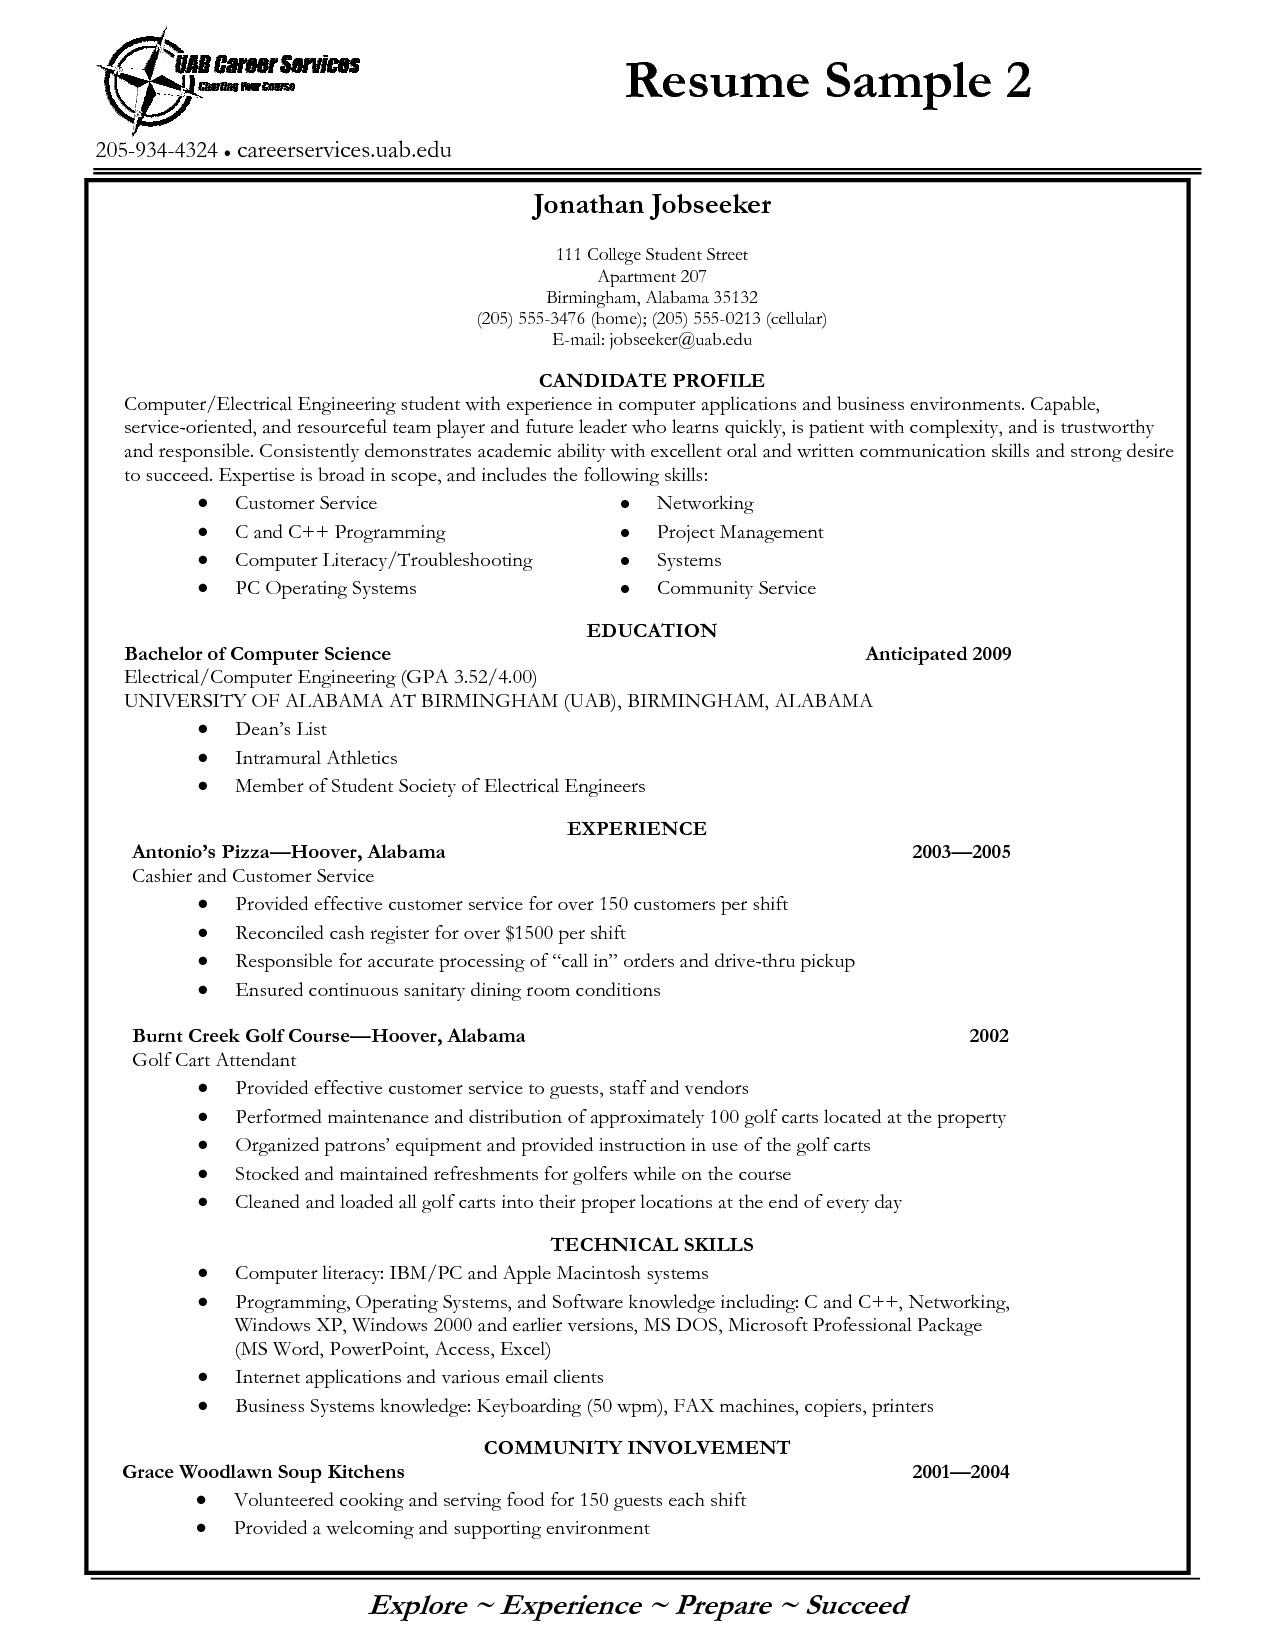 tags college graduate resume no experience college graduate resume